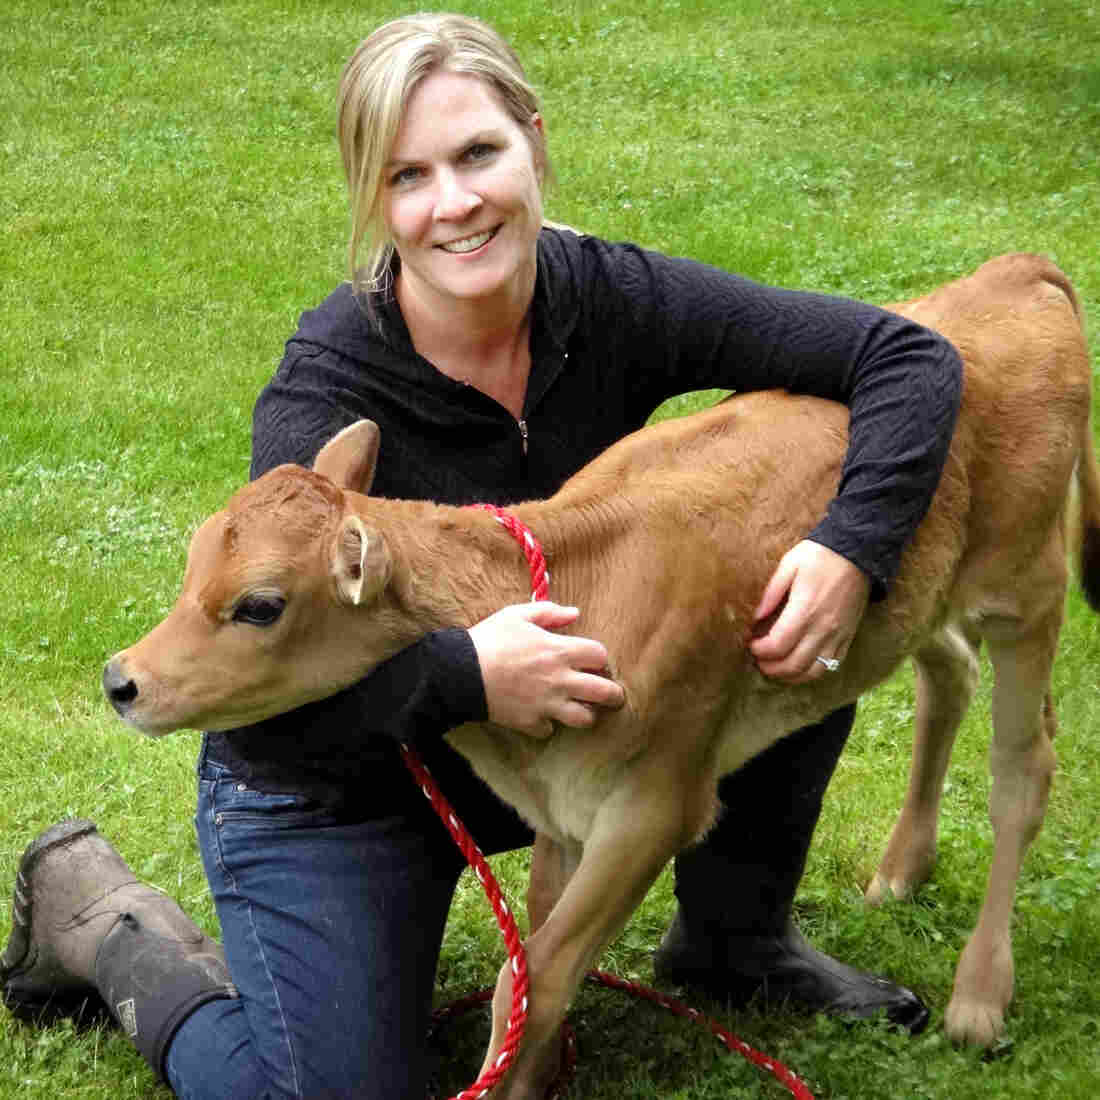 Raw Milk Producers Aim To Regulate Themselves